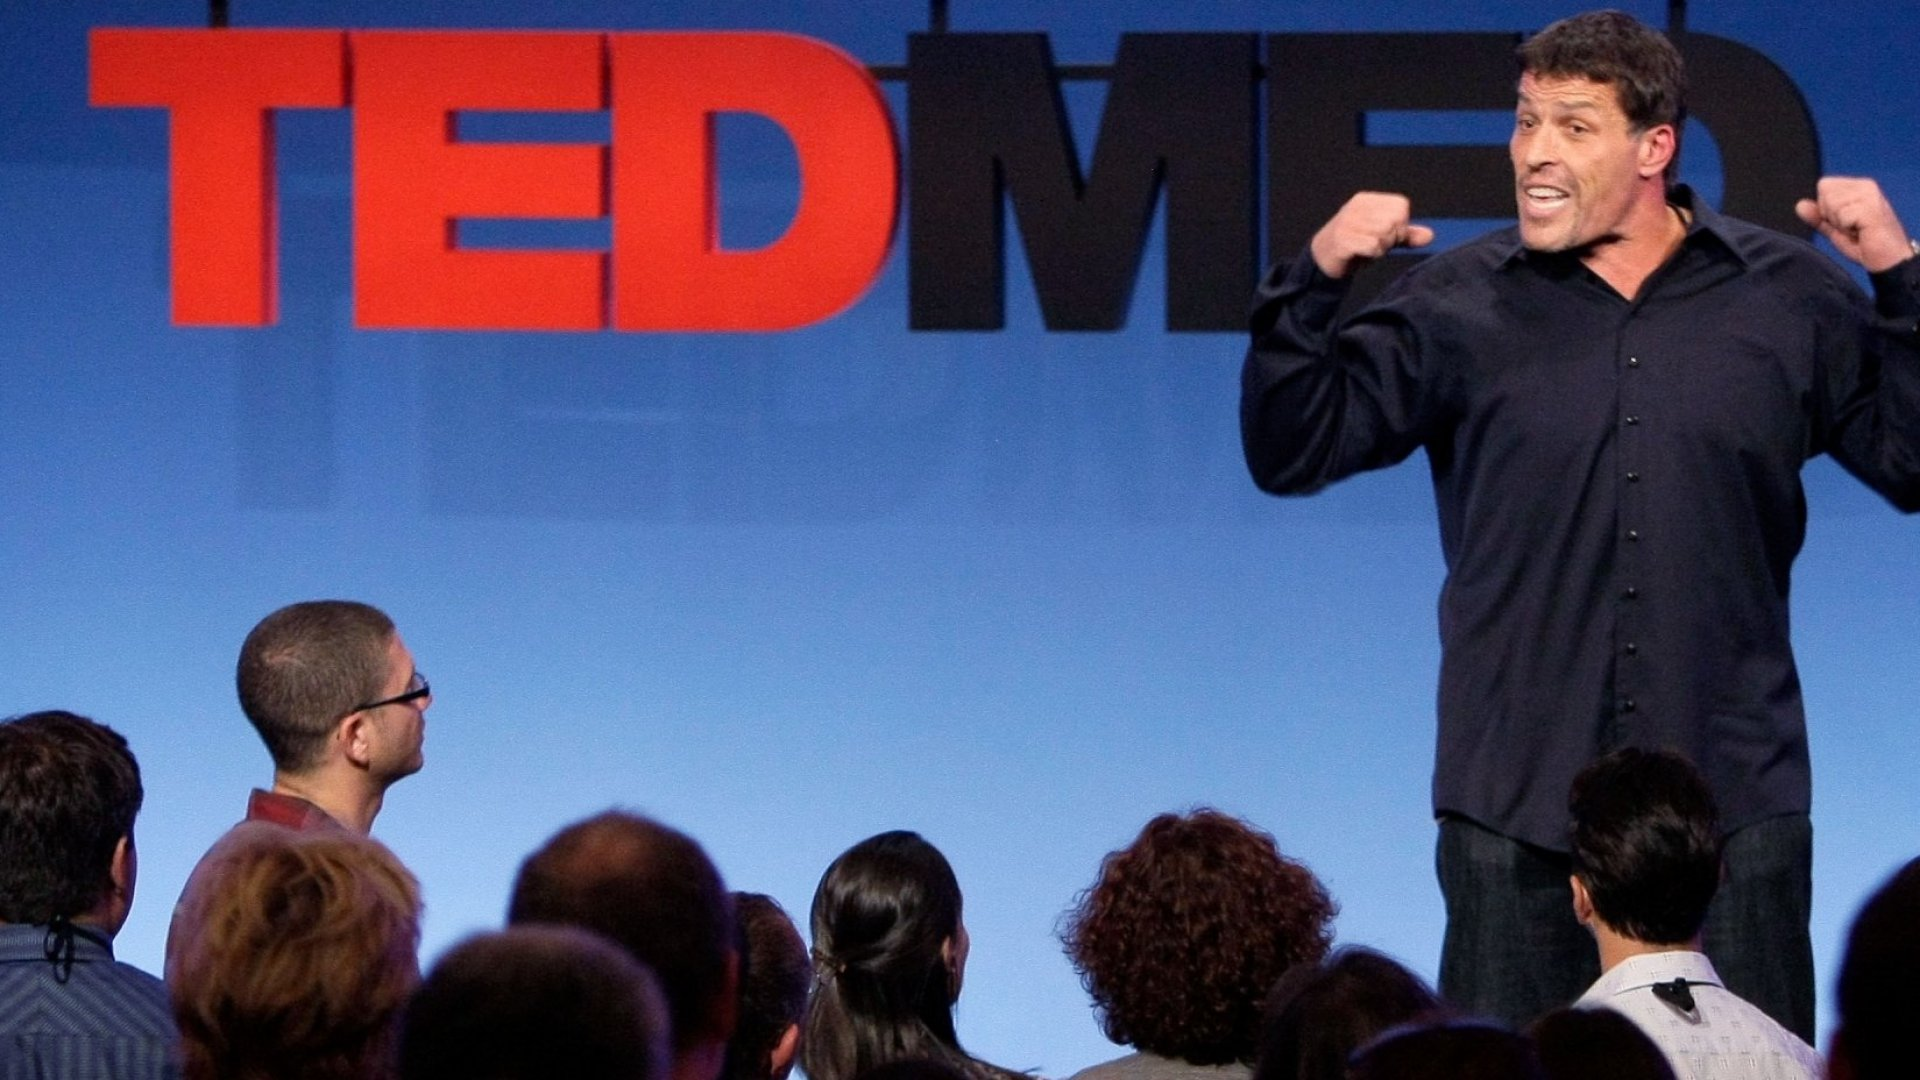 Want Your TED Talk to Be a Success? Follow These 7 Simple Steps